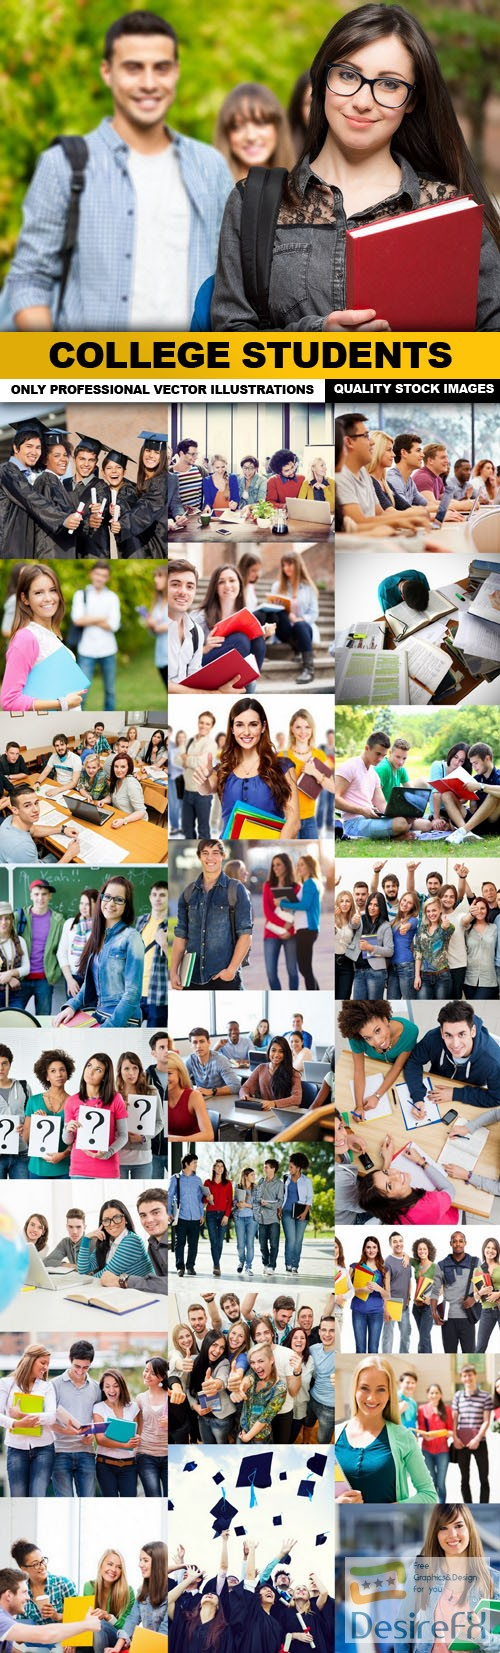 stock-images - College Students - 25 HQ Images